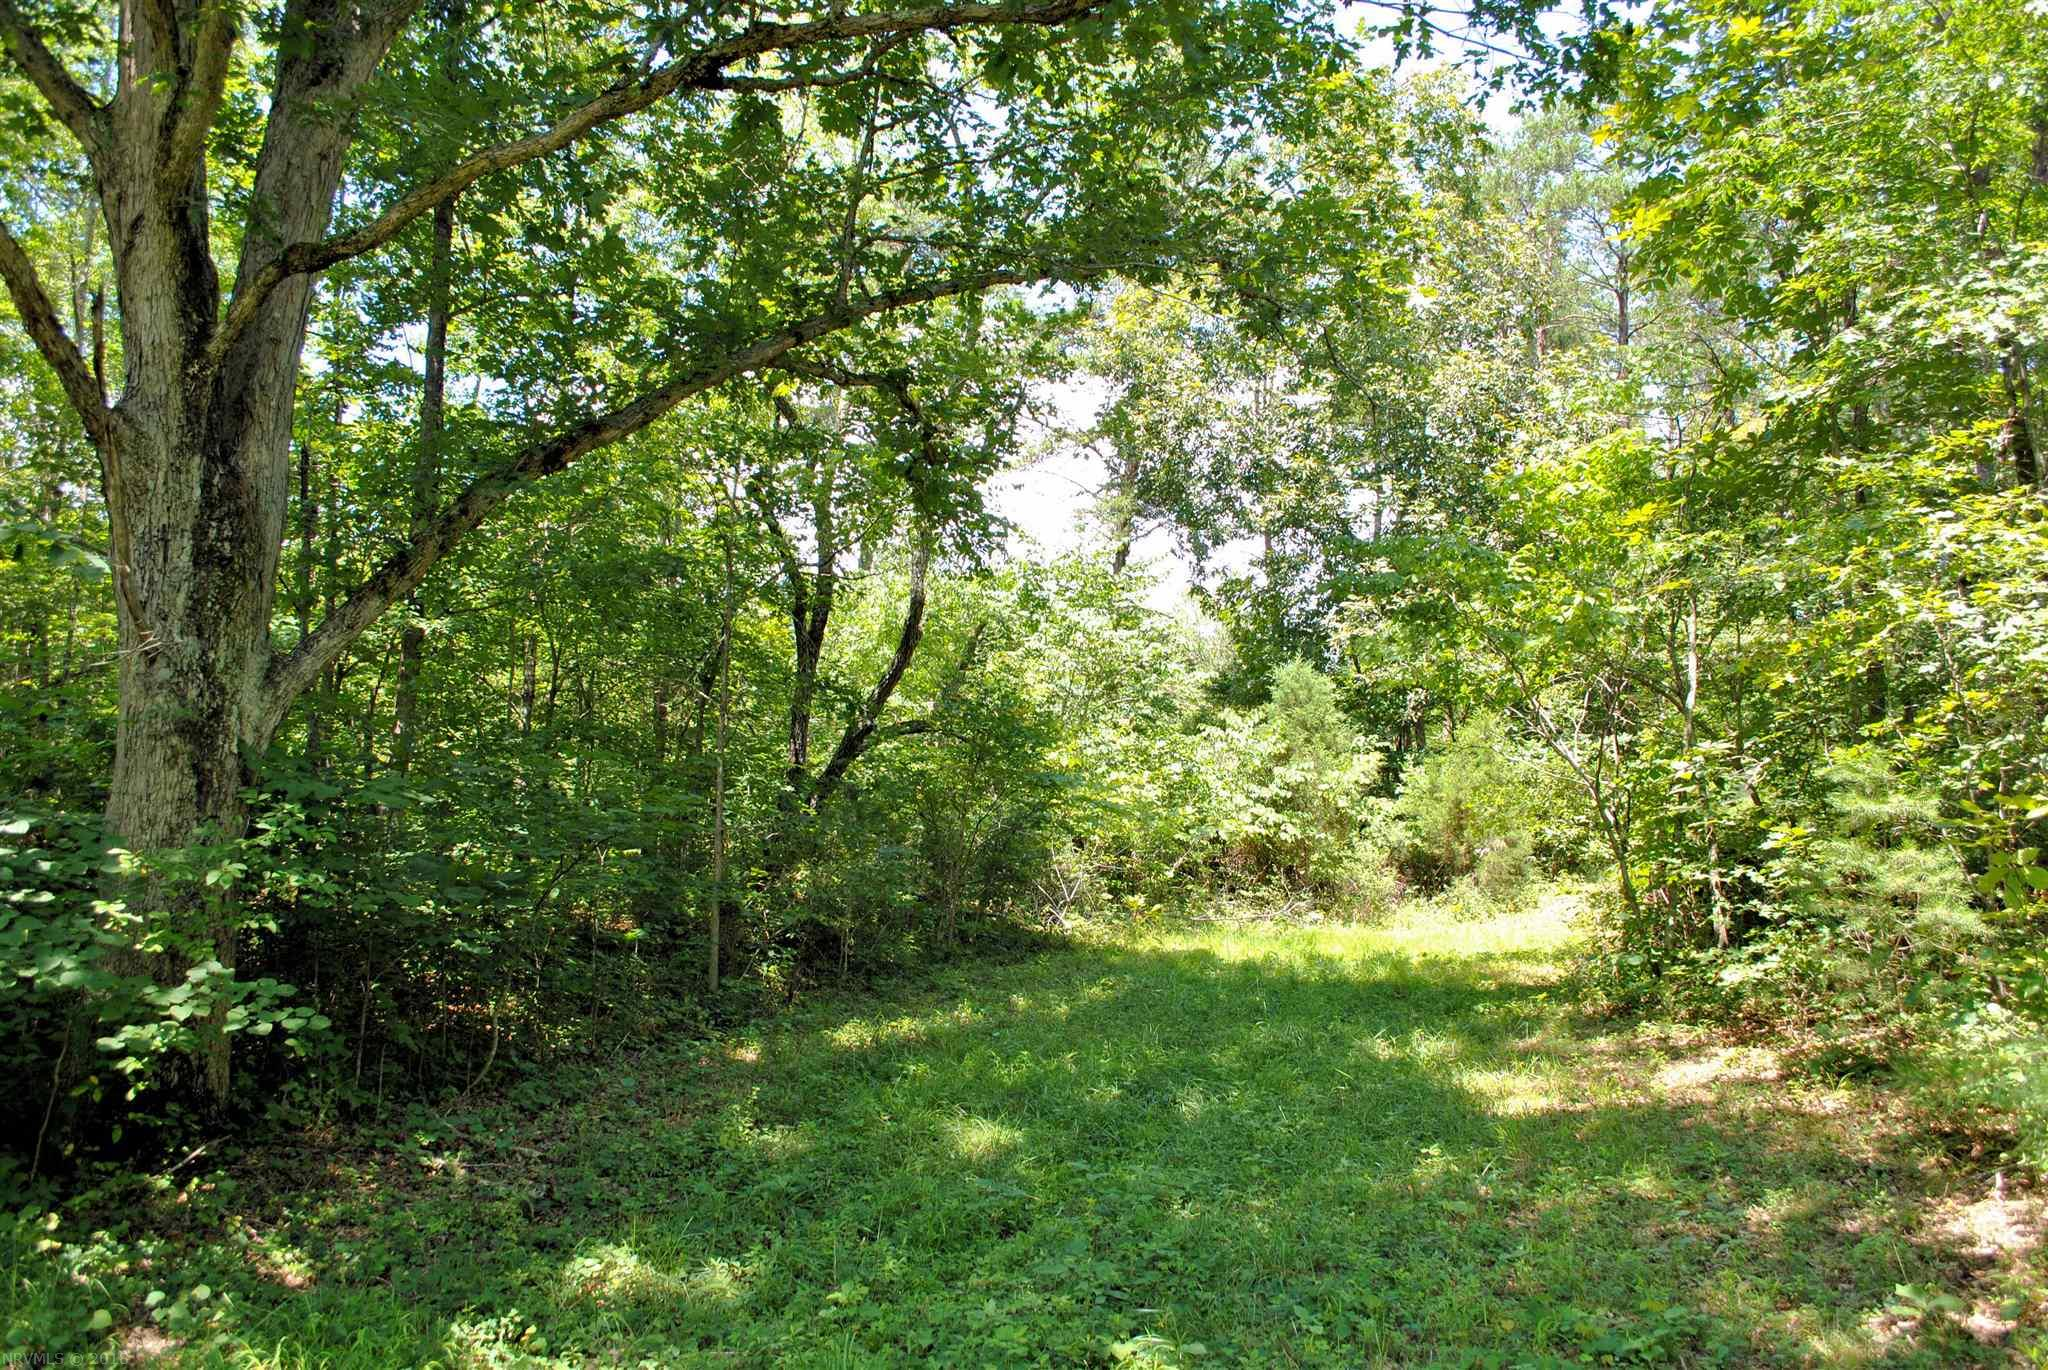 Build your dream home on this gorgeous, wooded 2.565 acre lot in Hickory Knob Subdivision.  The lot has been perked already for a septic system and is ready to be built on.  Underground utilities.  Conveniently located just minutes to I-81 and 20 minutes to Roanoke or Blacksburg & Virginia Tech. Come find your little piece of heaven!